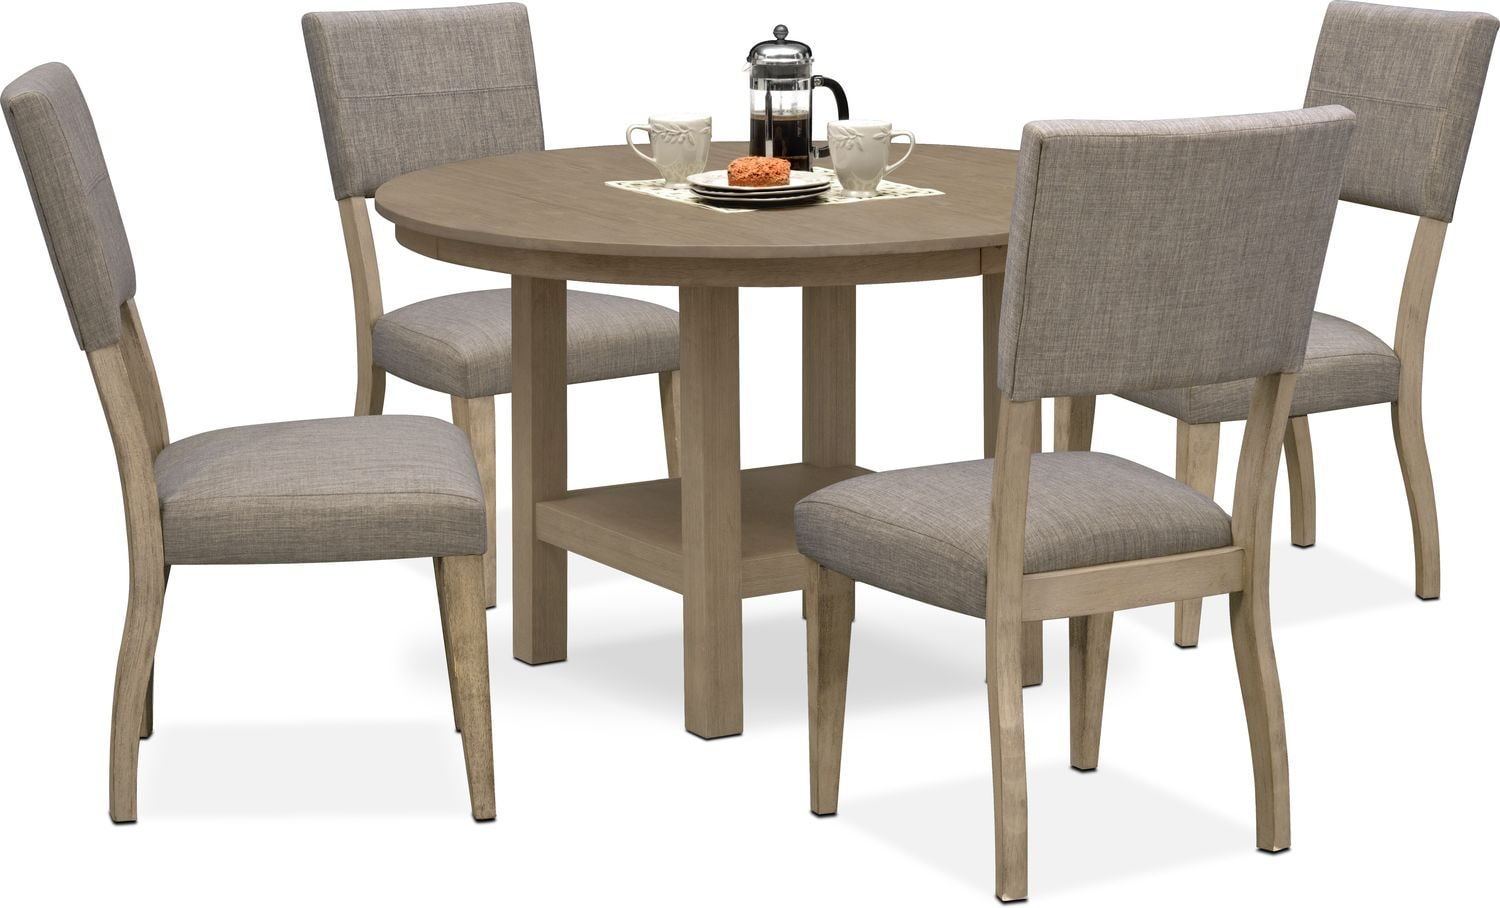 Dining Room Furniture   Tribeca Round Dining Table And 4 Upholstered Side  Chairs   Gray